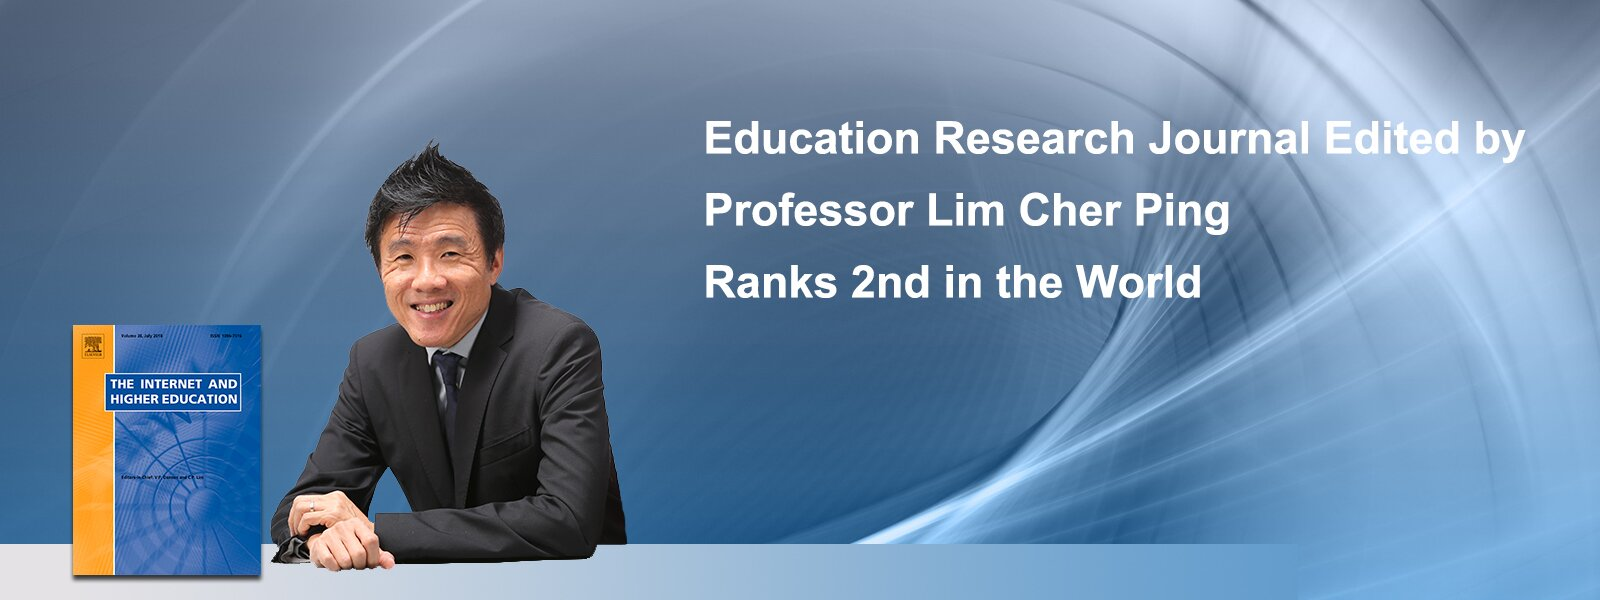 Education Research Journal Edited by Professor Lim Cher Ping Ranked 2nd in the World